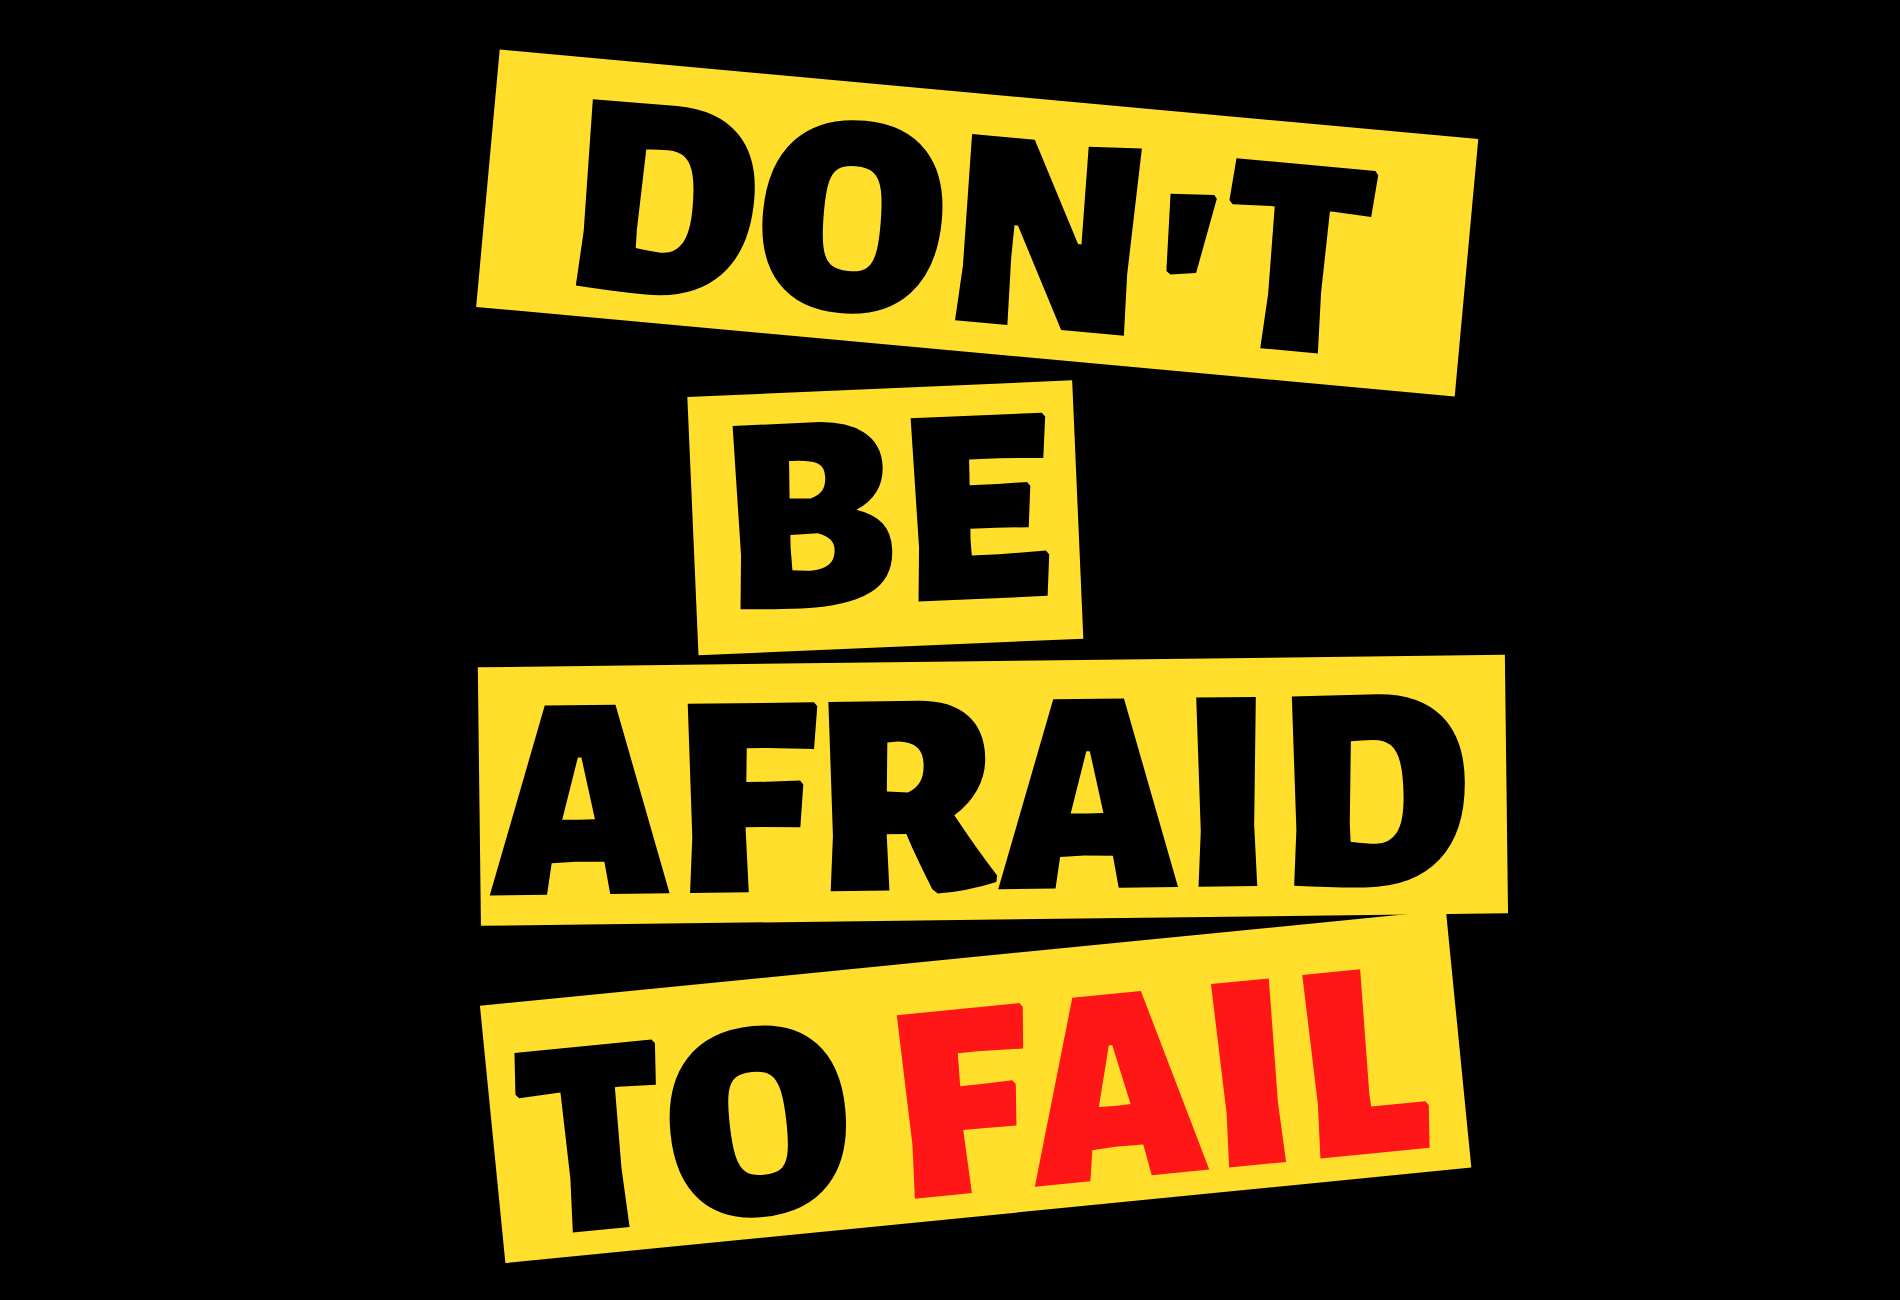 don't be afraid to fail sign